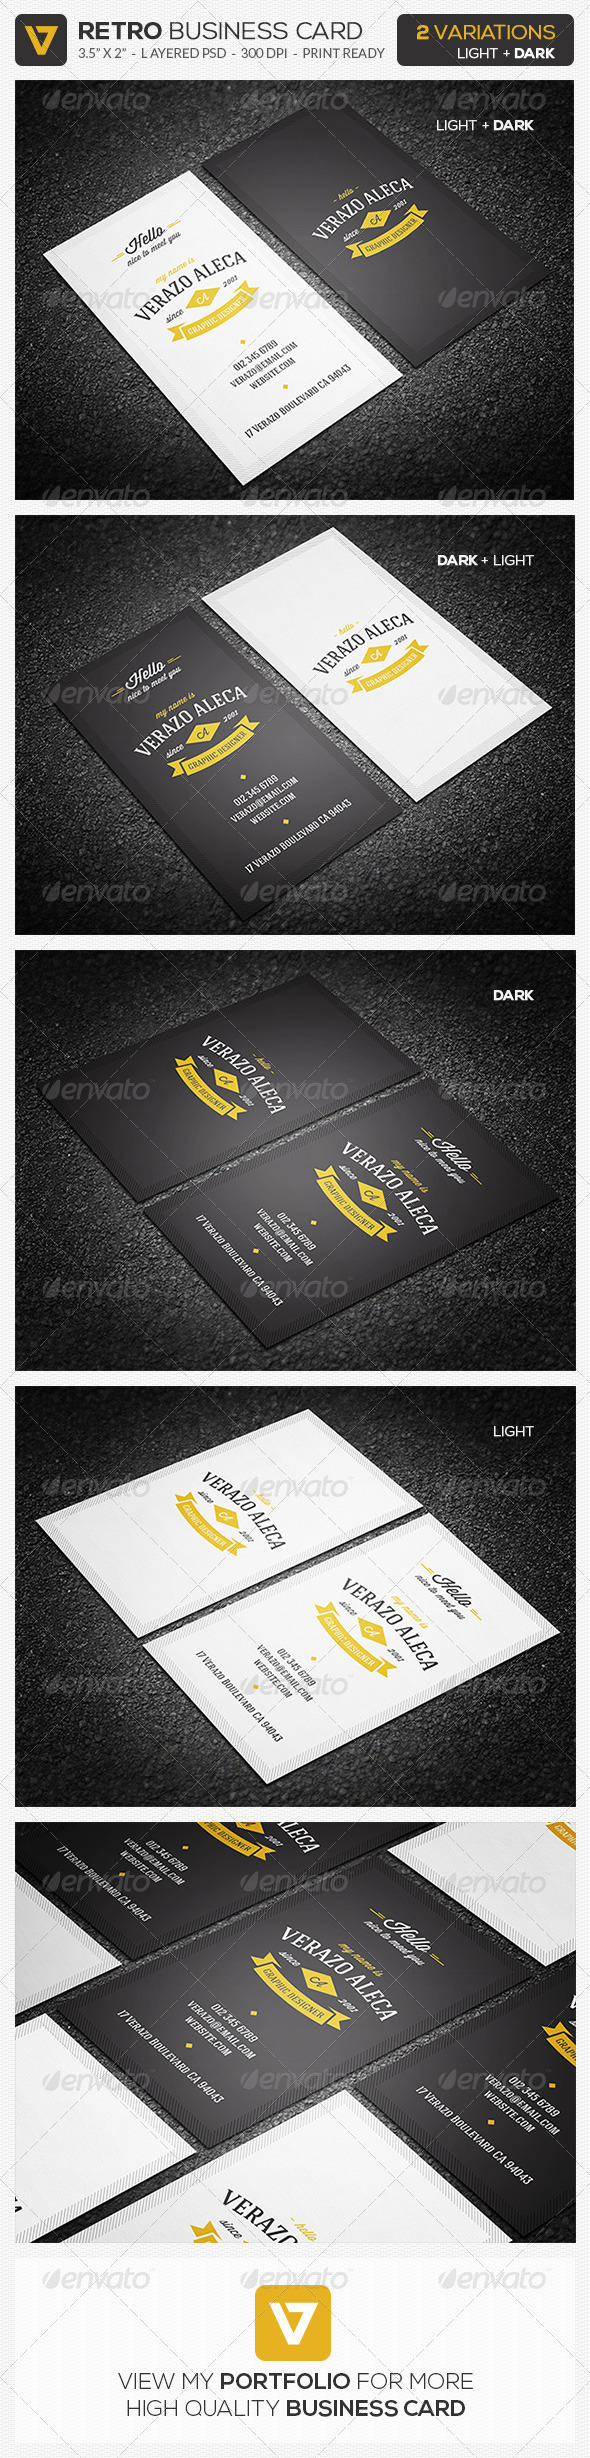 GraphicRiver Retro Vintage Business Card 01 8410901